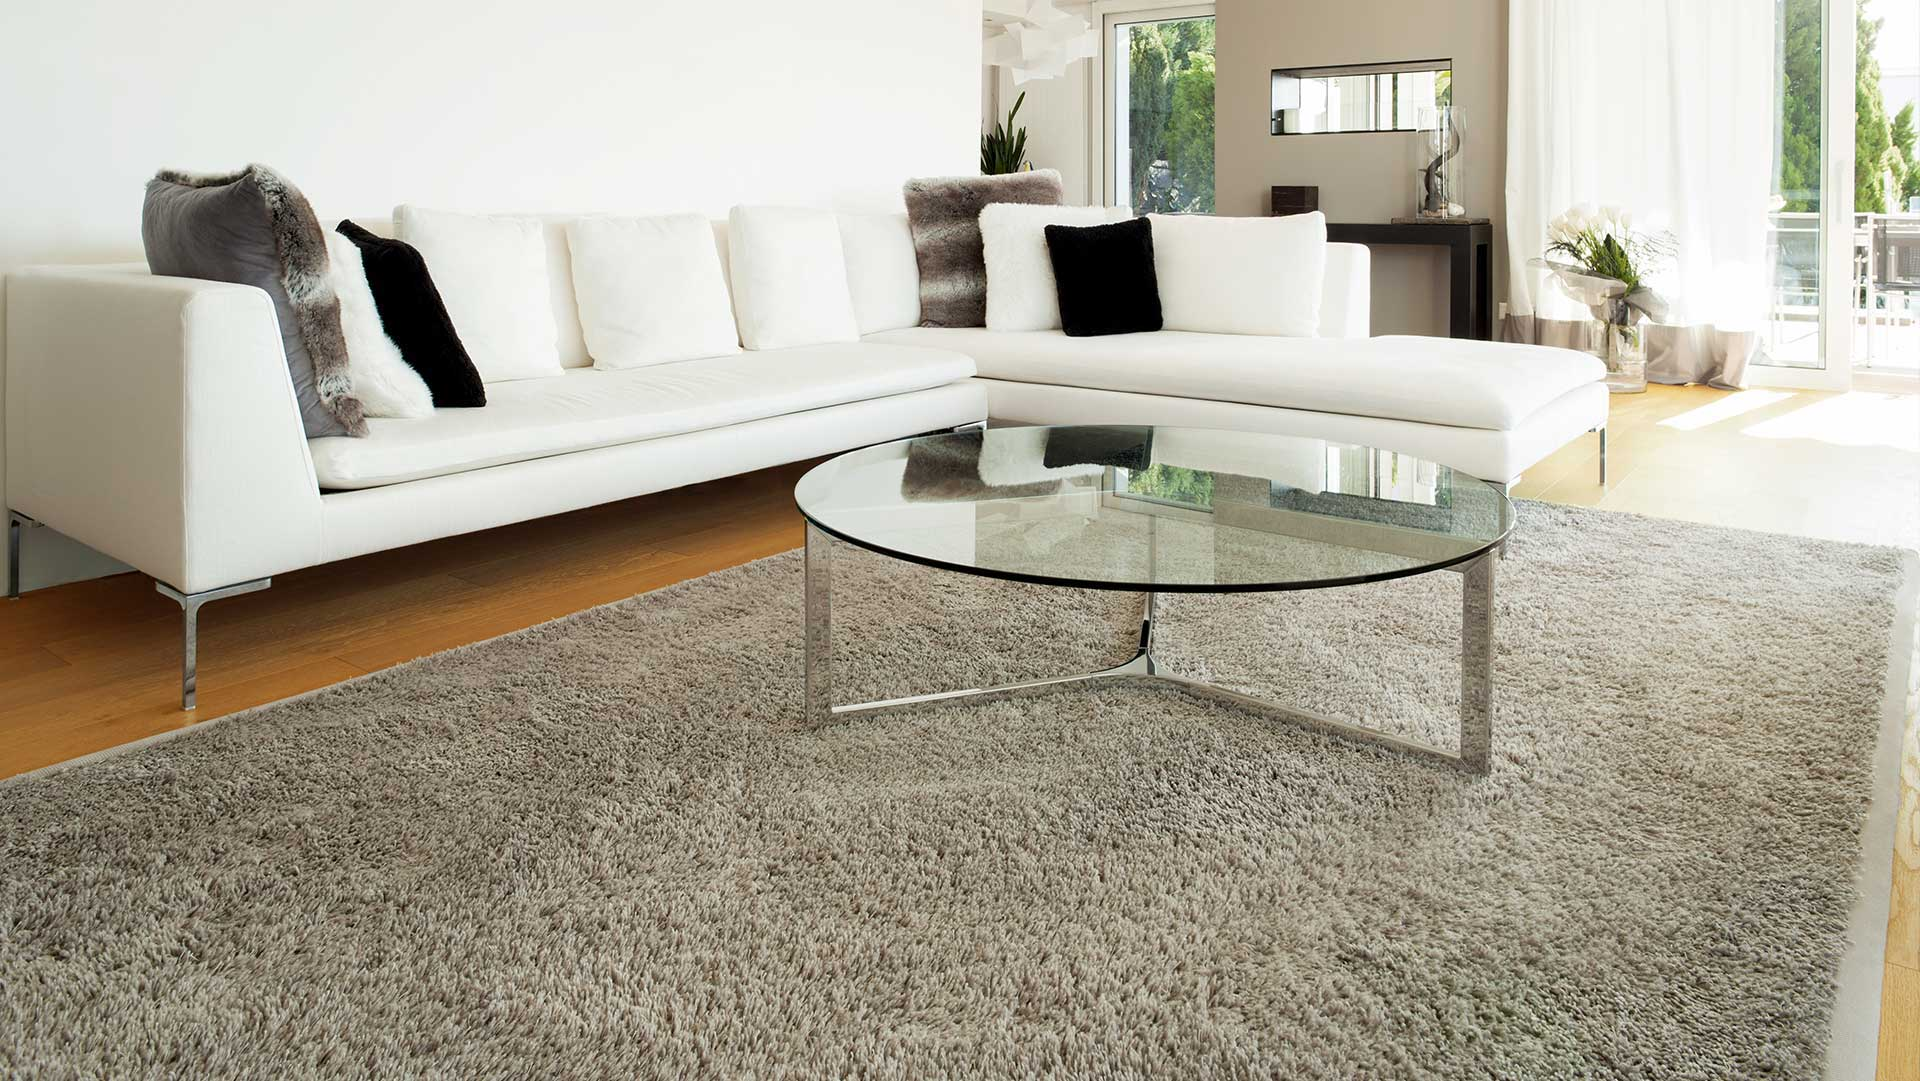 Home La Quinta Commercial Carpet Cleaning Upholstery